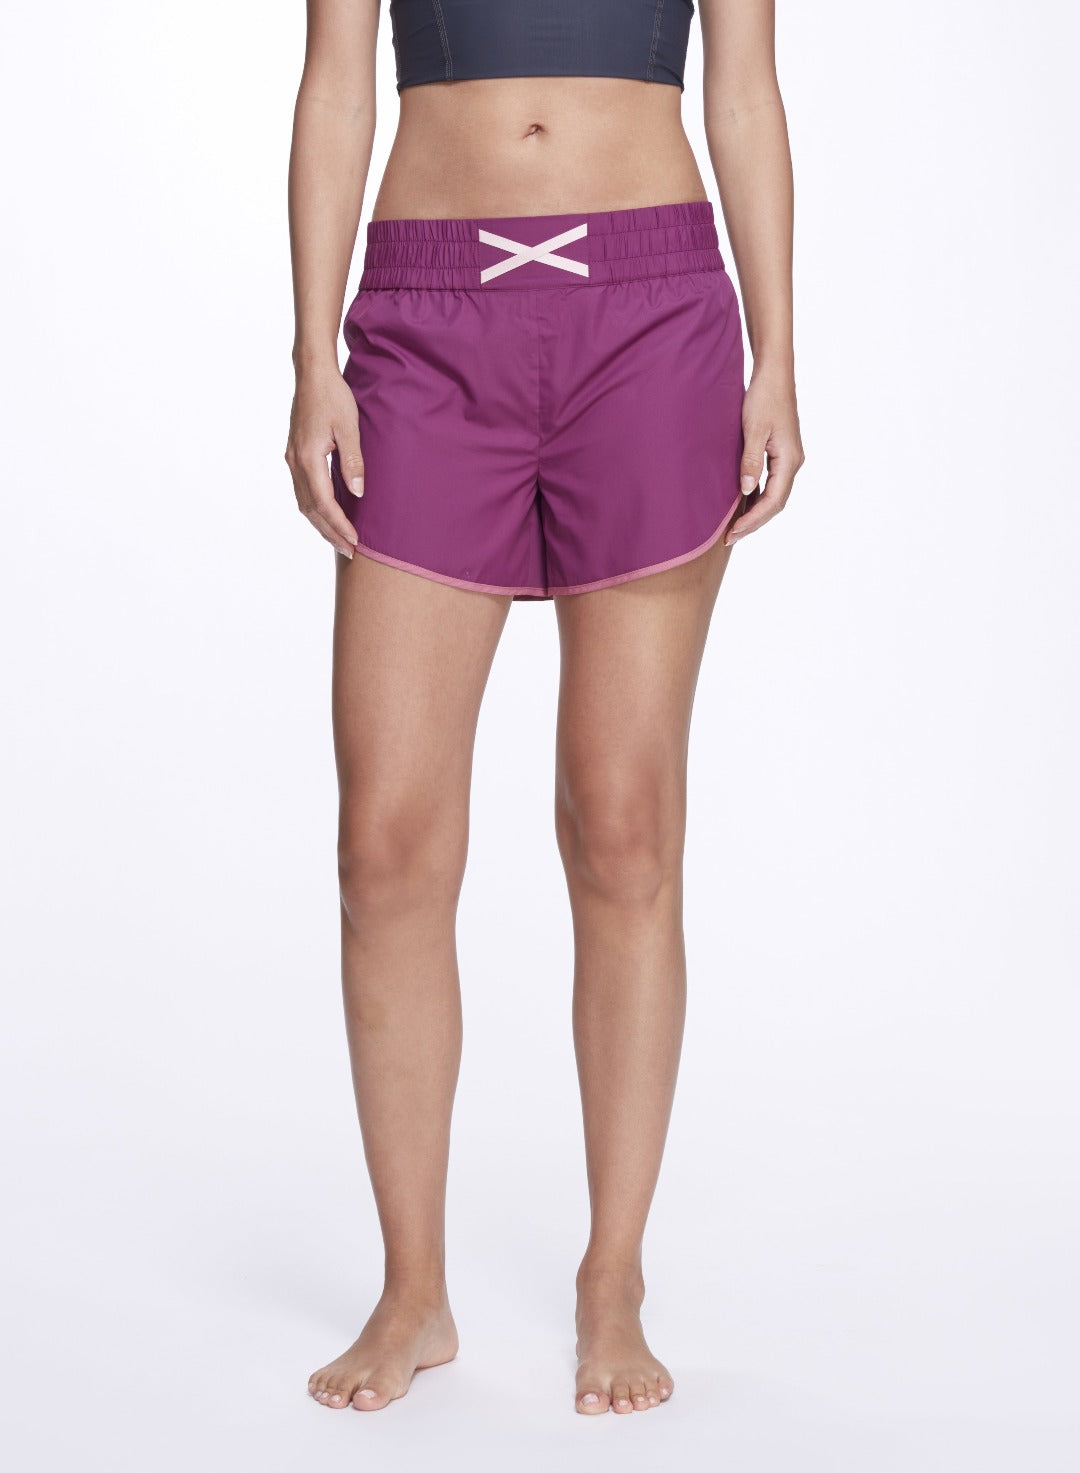 Althea Short